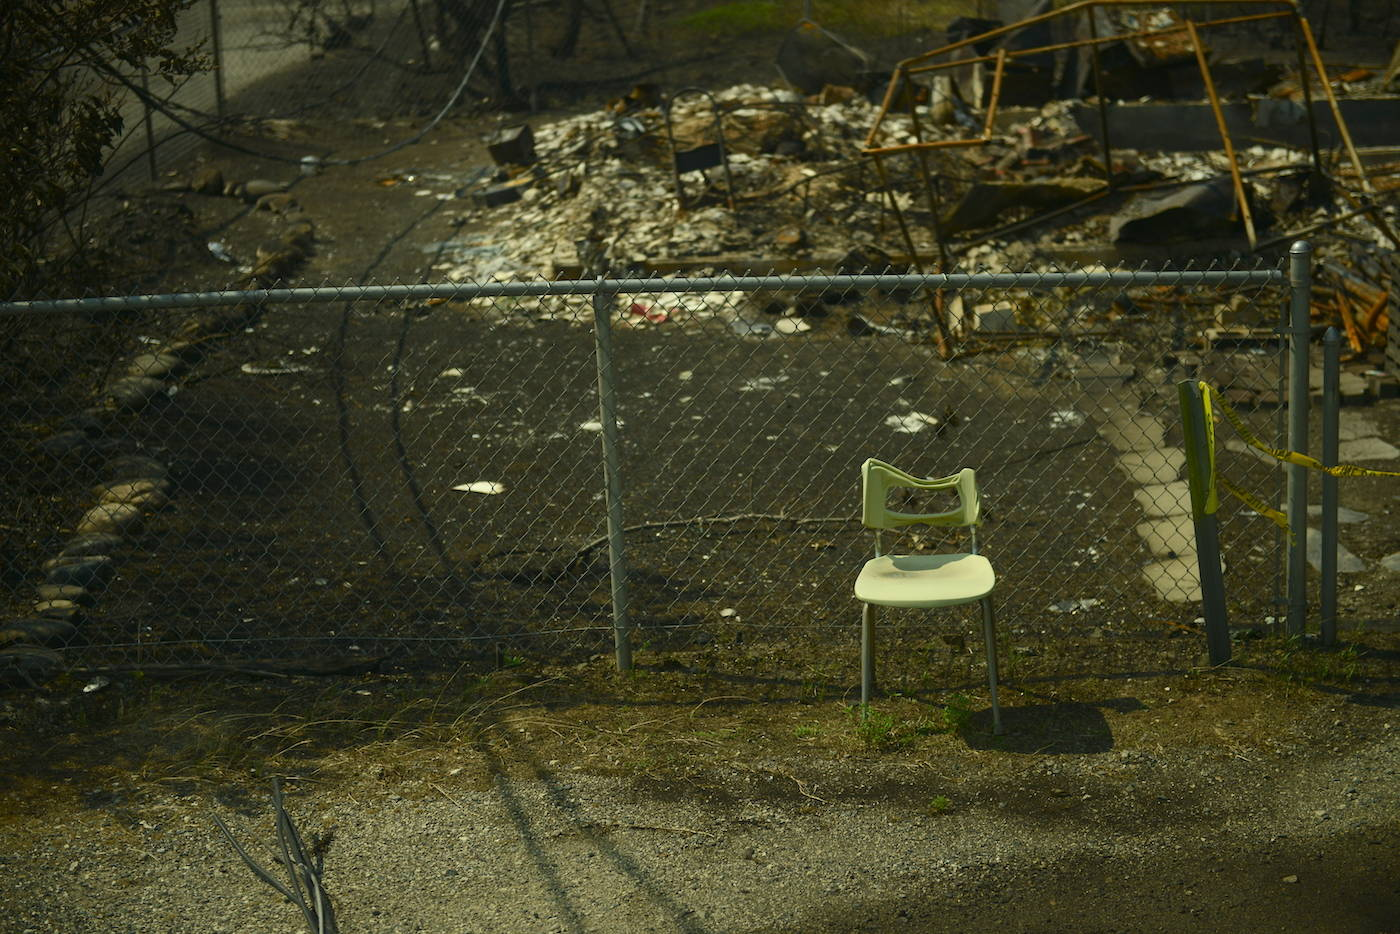 A chair sits on Main Street in Lytton, B.C. on Friday, July 9, 2021, nine days after a wildfire ripped through the village on June 30, 2021. (Jenna Hauck/ Black Press Media)